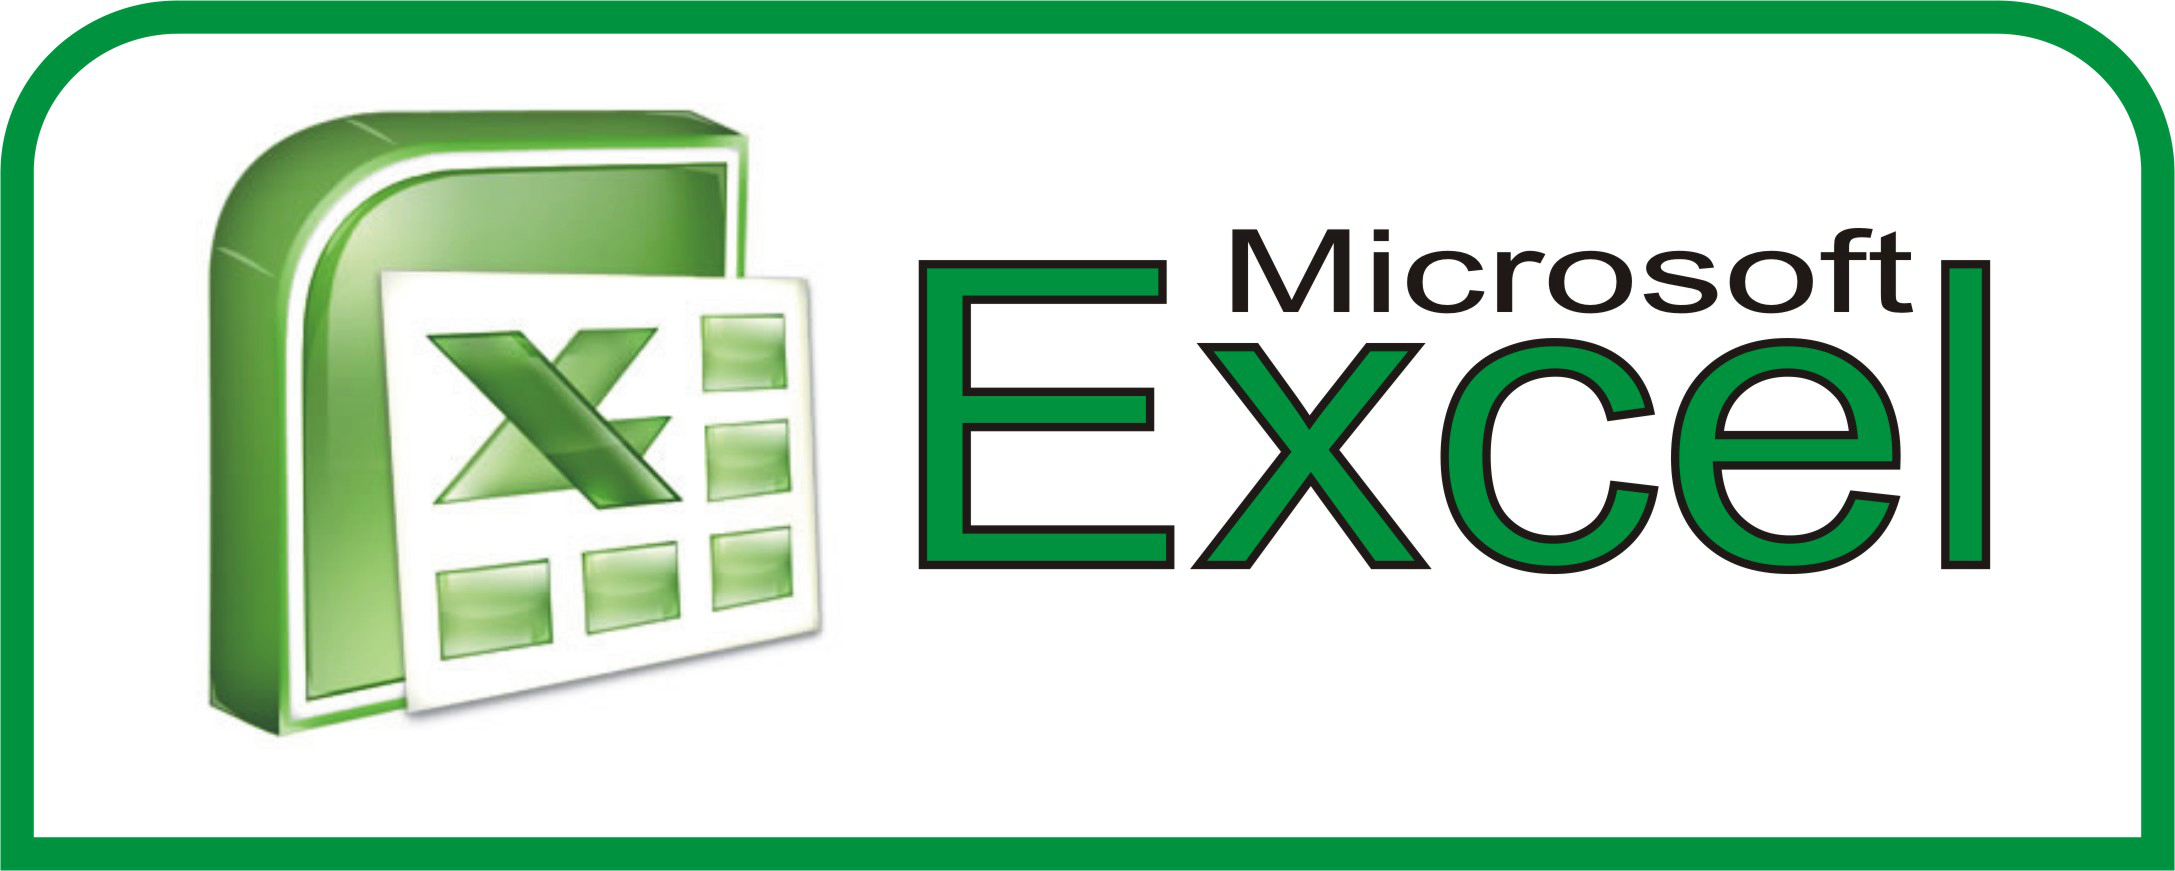 Ediblewildsus  Surprising  Excel Shortcuts You Probably Didnt Know About  Techdissected With Extraordinary How To Create Database In Excel Besides Excel Quantile Furthermore Excel Data Format With Archaic Cumulative Frequency Distribution Excel Also Loan Amortization Excel Formula In Addition Percent Rank Excel And Excel Viewer Mac As Well As Excel Round To Nearest Thousand Additionally How To Remove Drop Down List In Excel  From Techdissectedcom With Ediblewildsus  Extraordinary  Excel Shortcuts You Probably Didnt Know About  Techdissected With Archaic How To Create Database In Excel Besides Excel Quantile Furthermore Excel Data Format And Surprising Cumulative Frequency Distribution Excel Also Loan Amortization Excel Formula In Addition Percent Rank Excel From Techdissectedcom